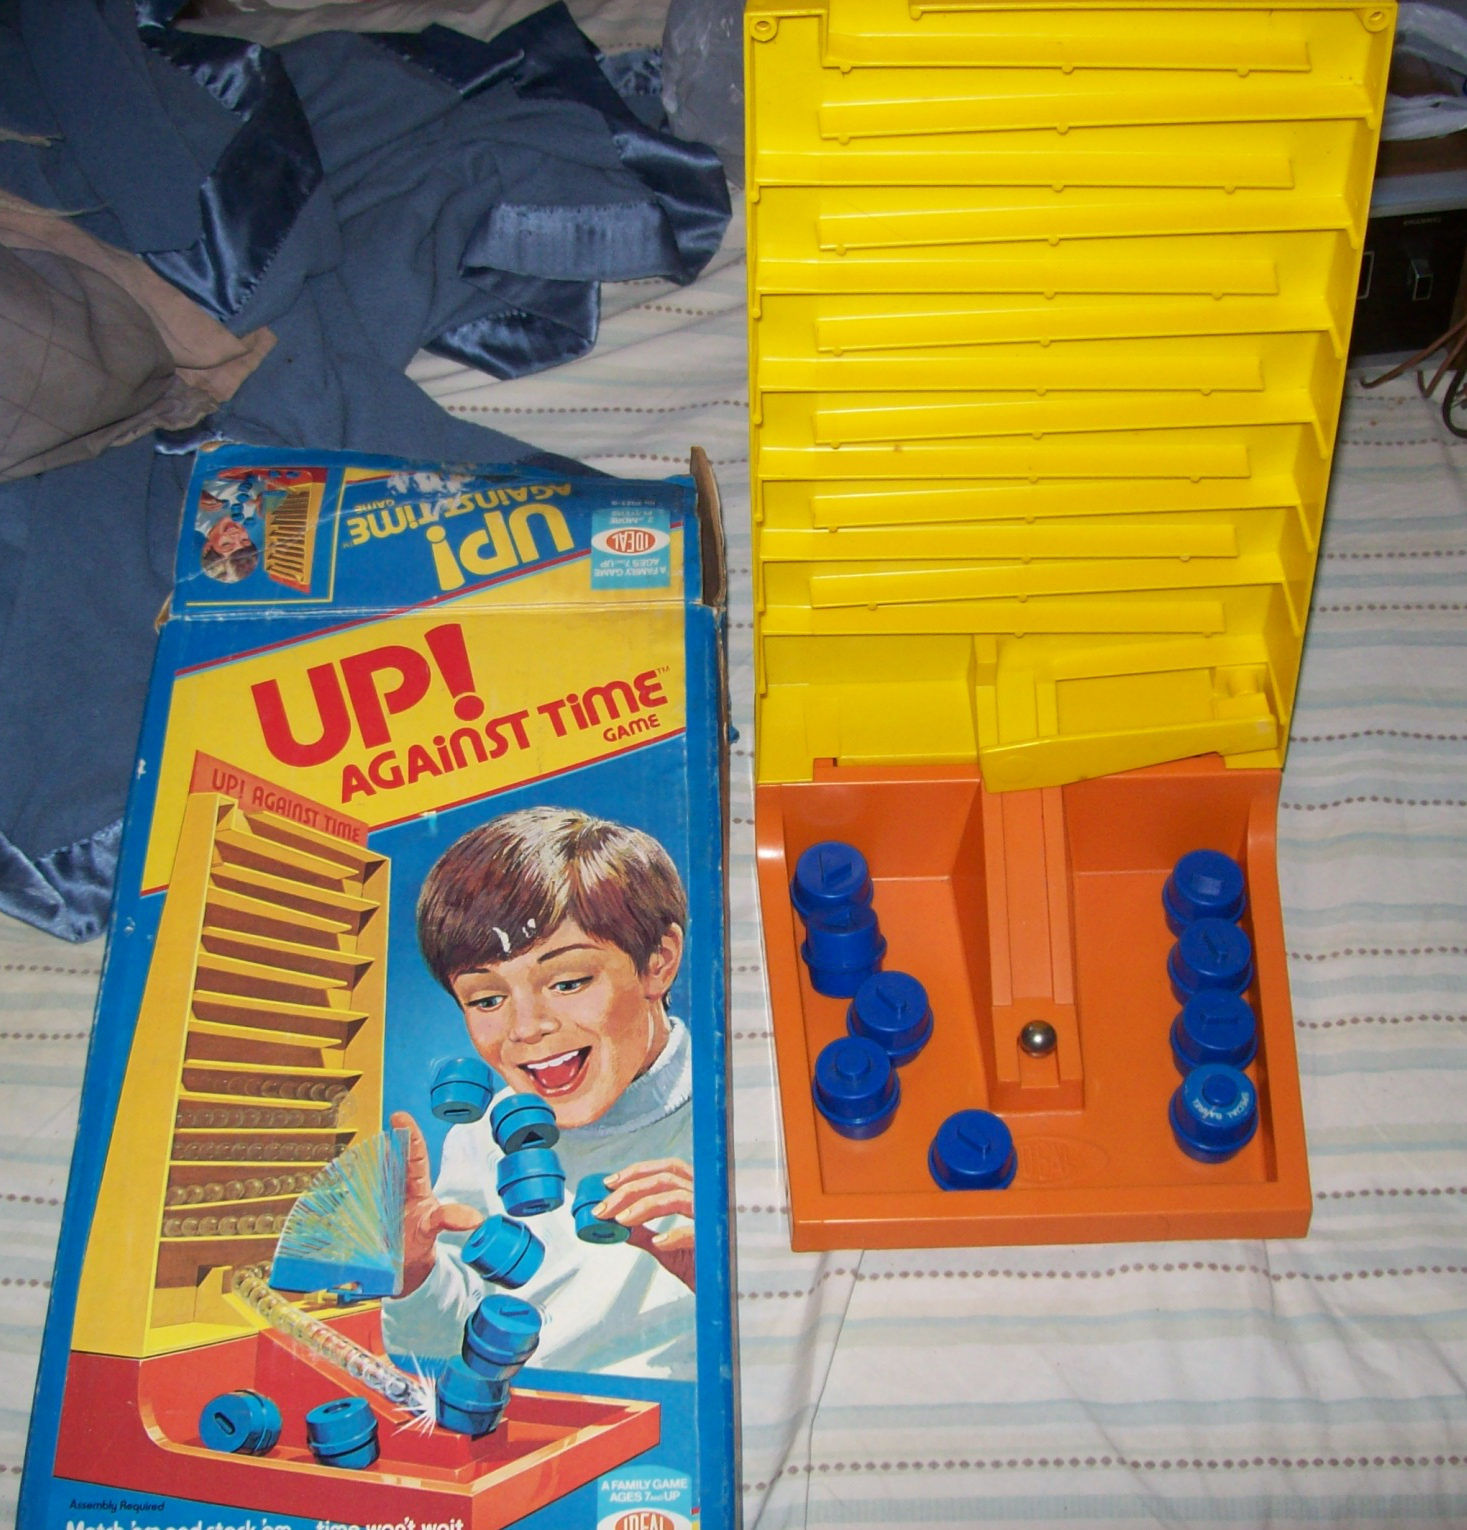 Vintage 1977 IDEAL Up Against Time Game with Original Box